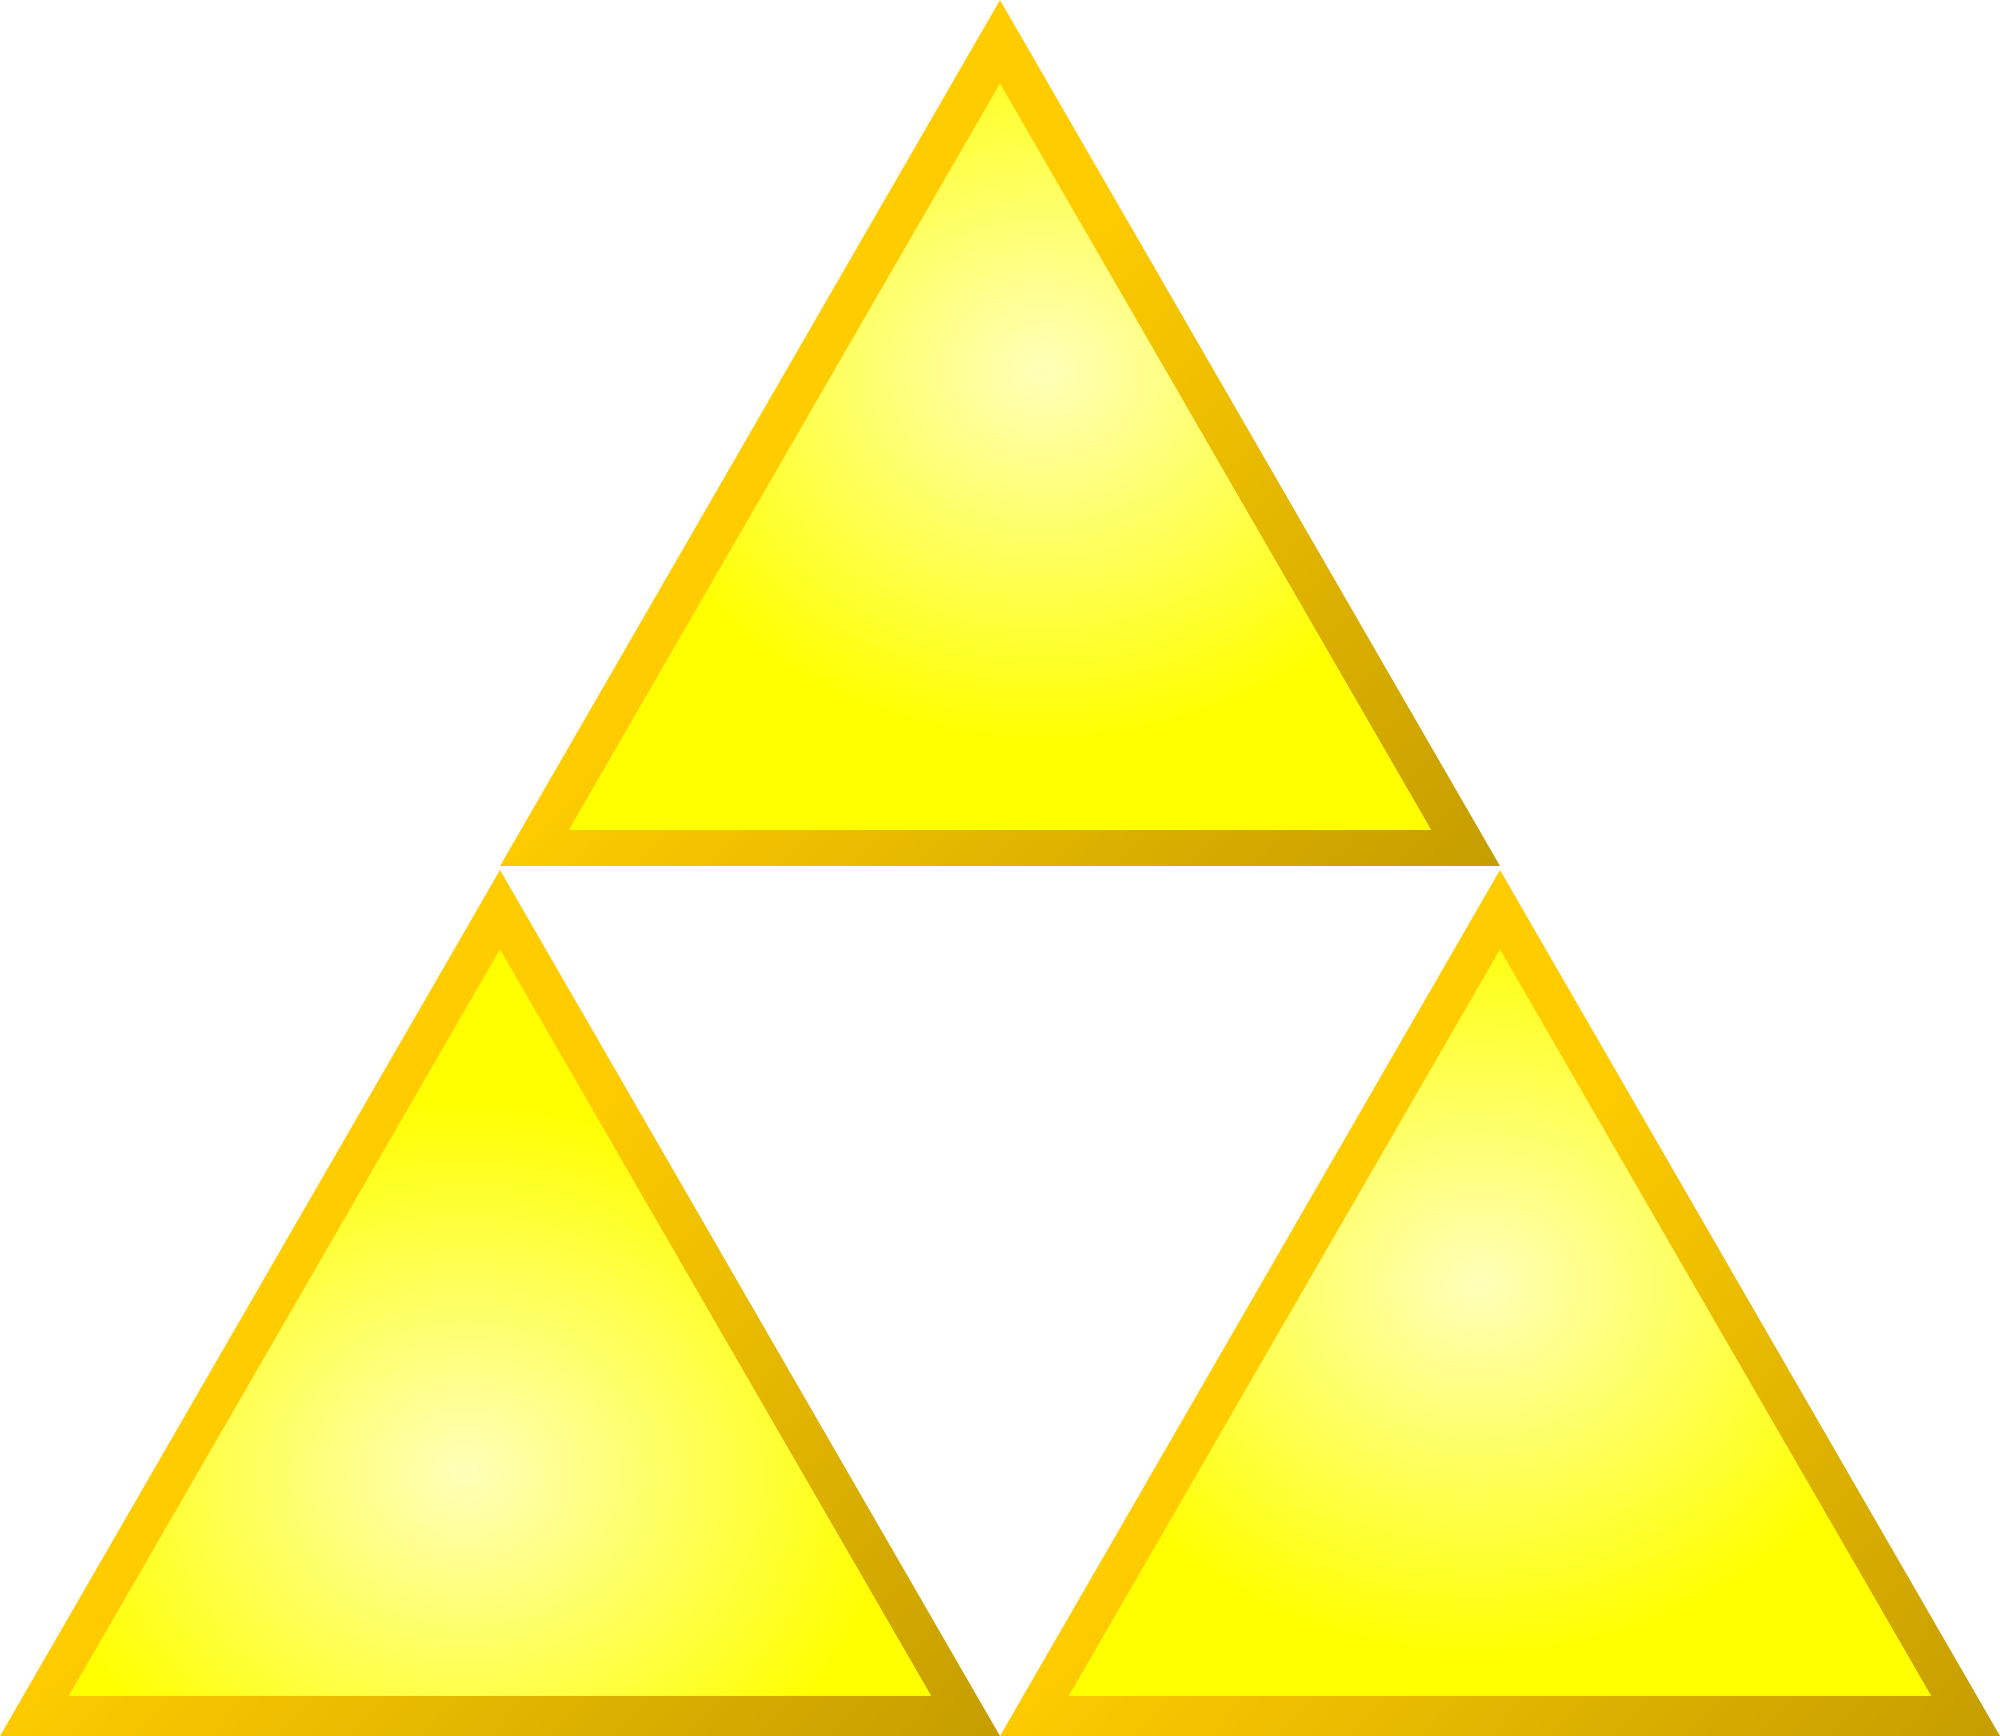 Triforce logo png. File svg wikimedia commons